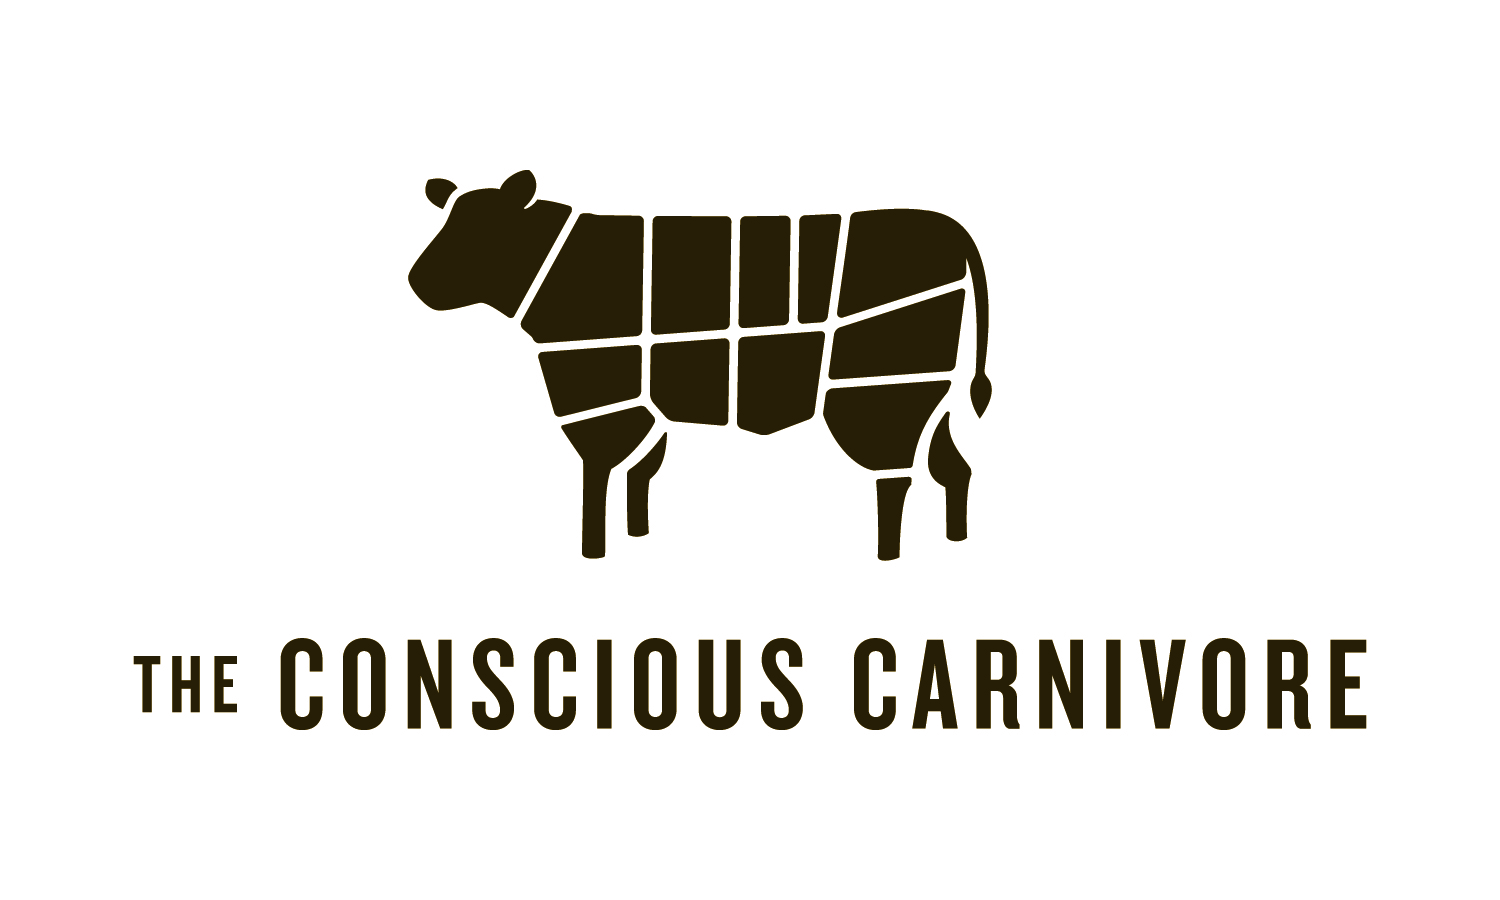 The Conscious Carnivore